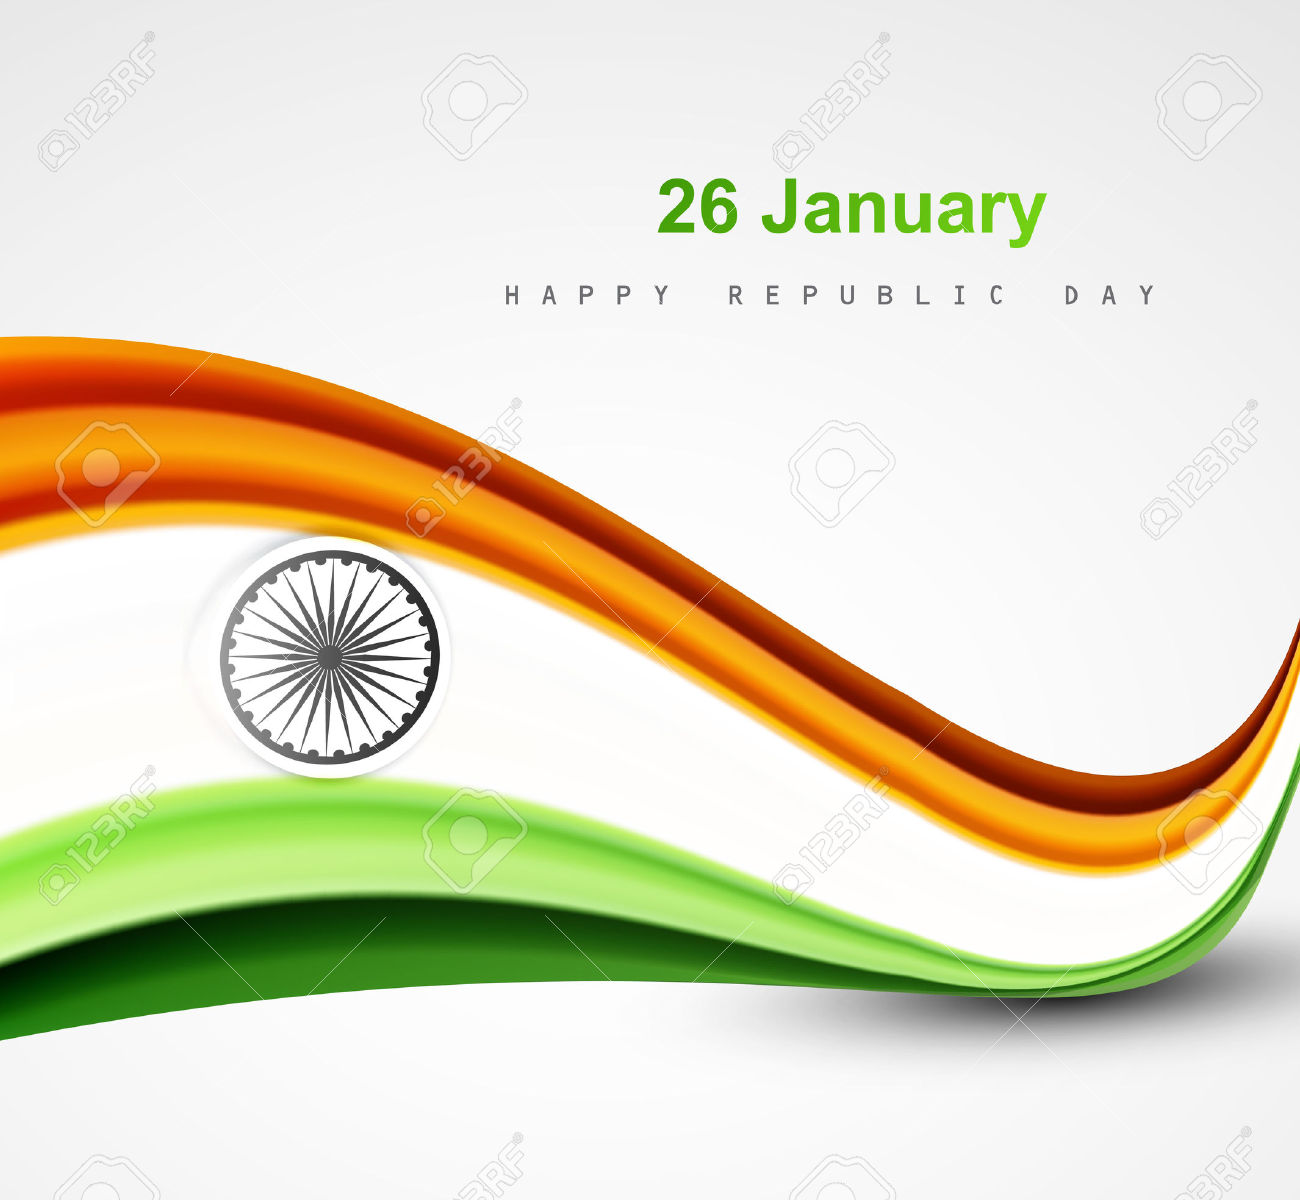 Stylish Indian Flag Republic Day Beautiful Tricolor Wave Design.